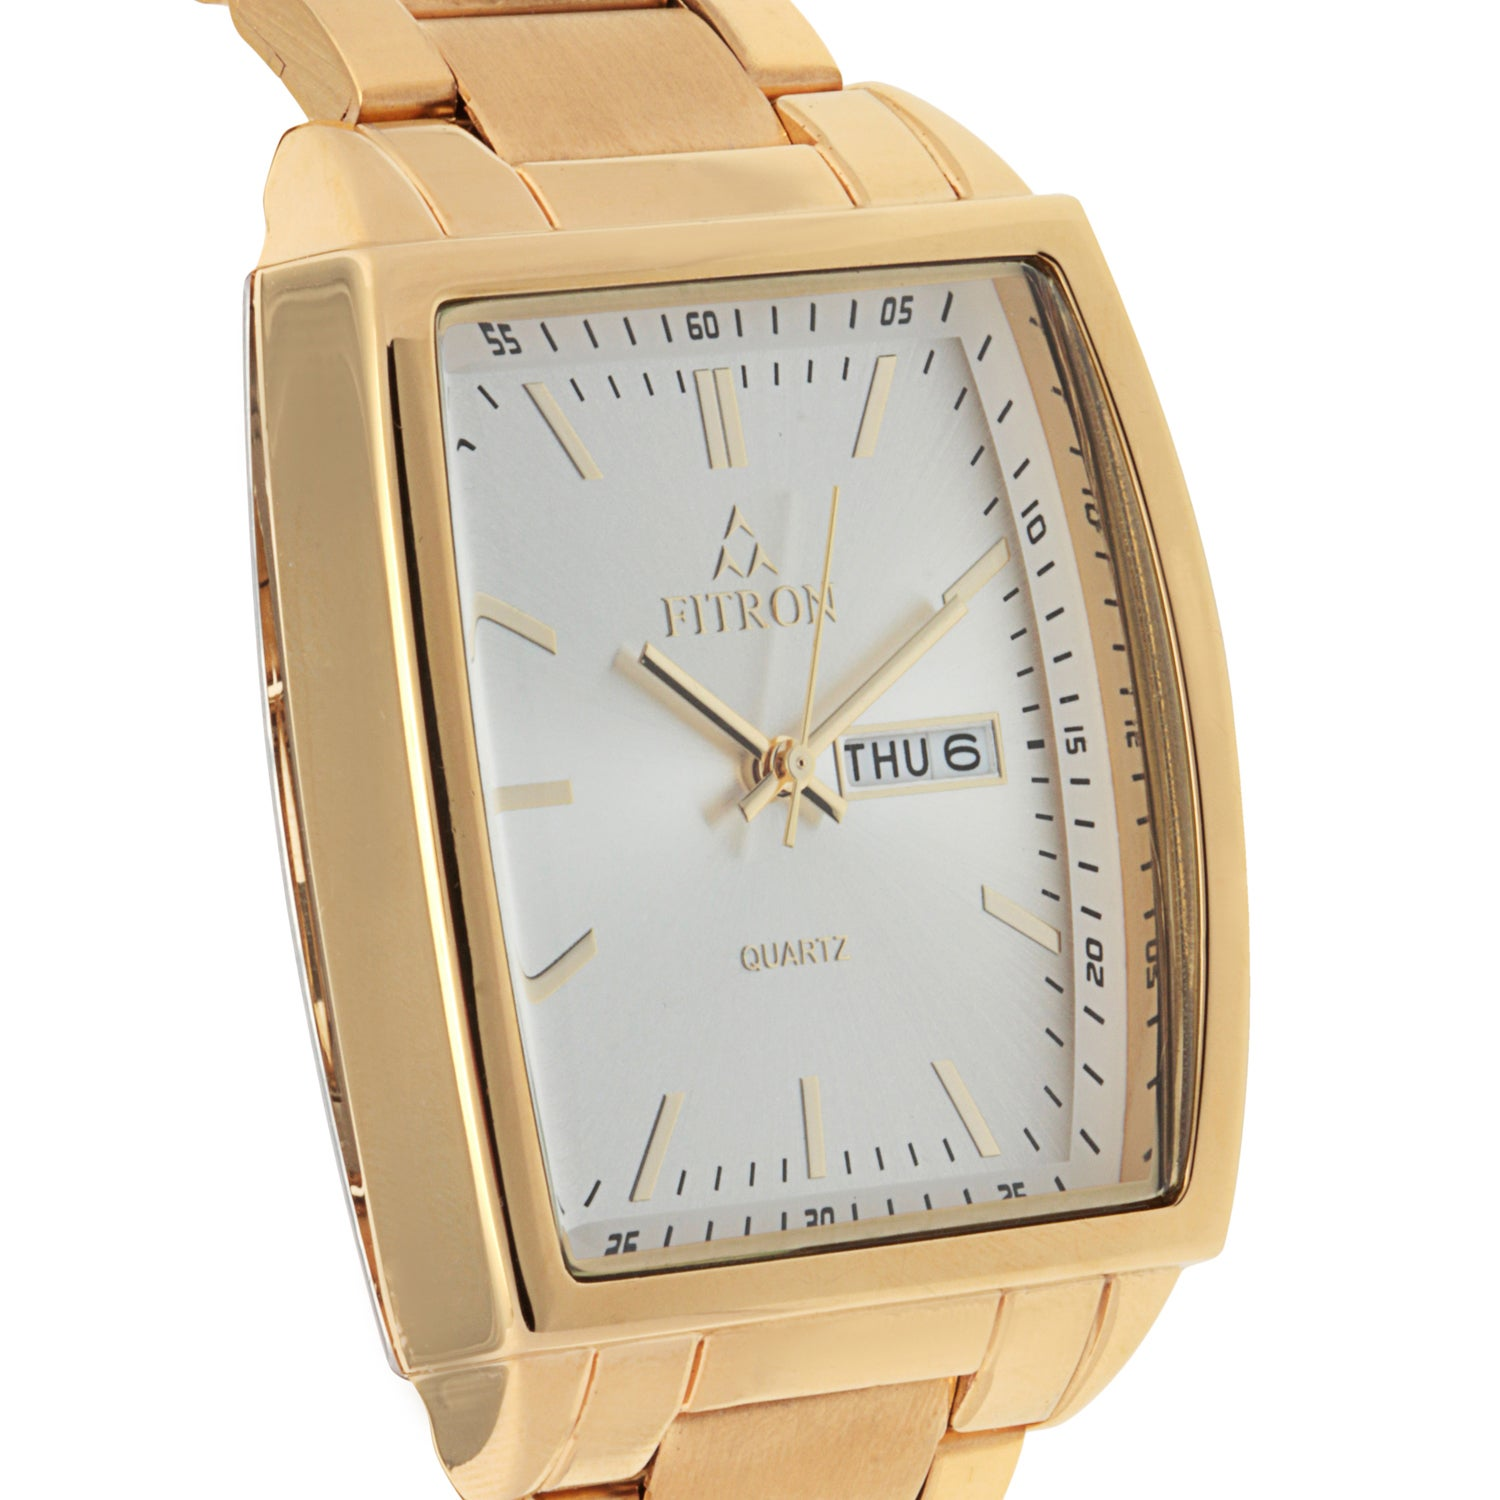 Shop Fitron Men's Stainless Steel Watch - Free Shipping On Orders Over $45 - Overstock.com - 9603601